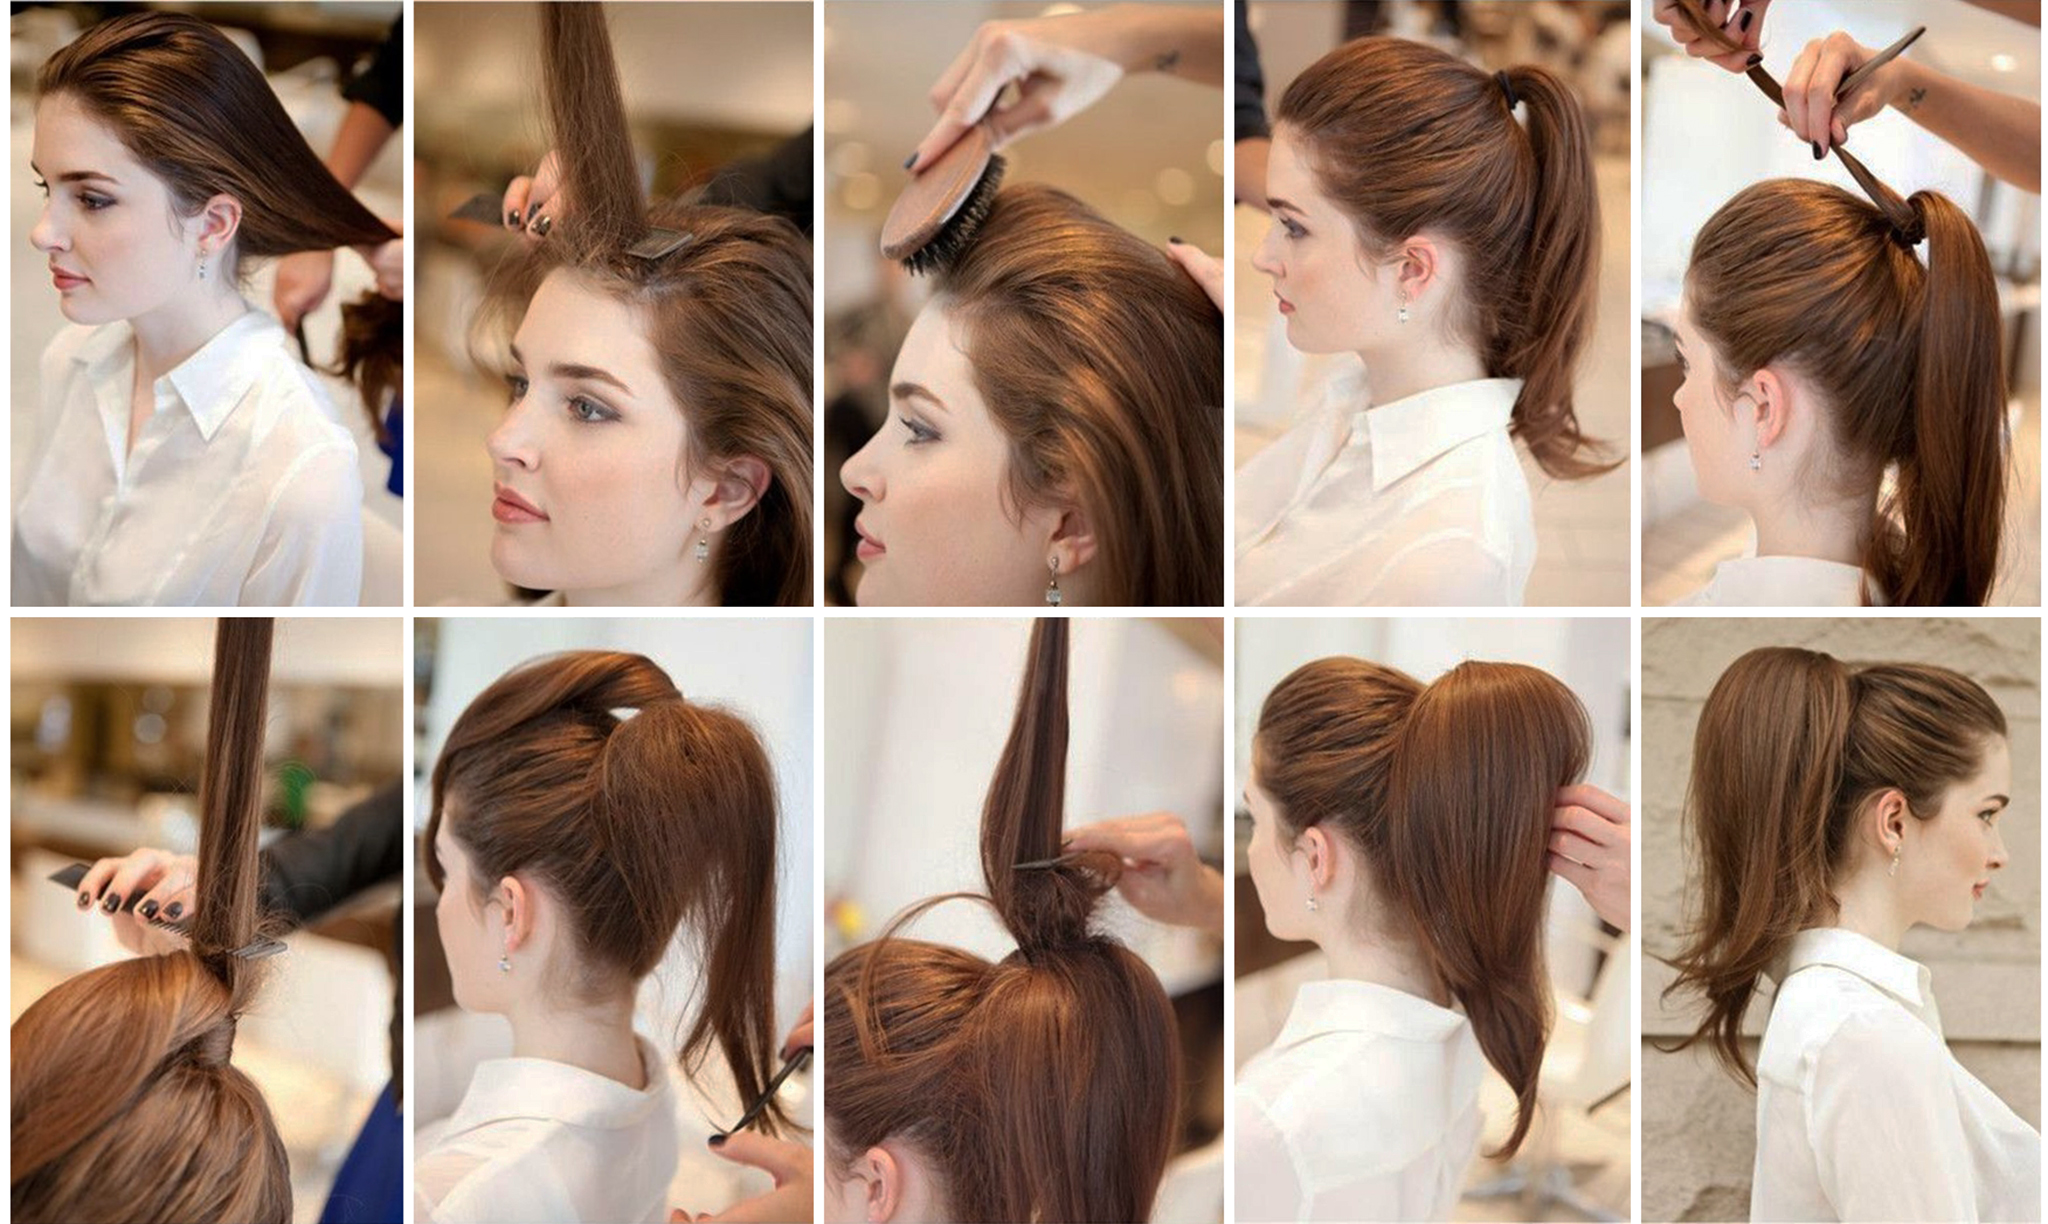 7 Cute And Easy Ponytail Hairstyles That Every Girl Should Try